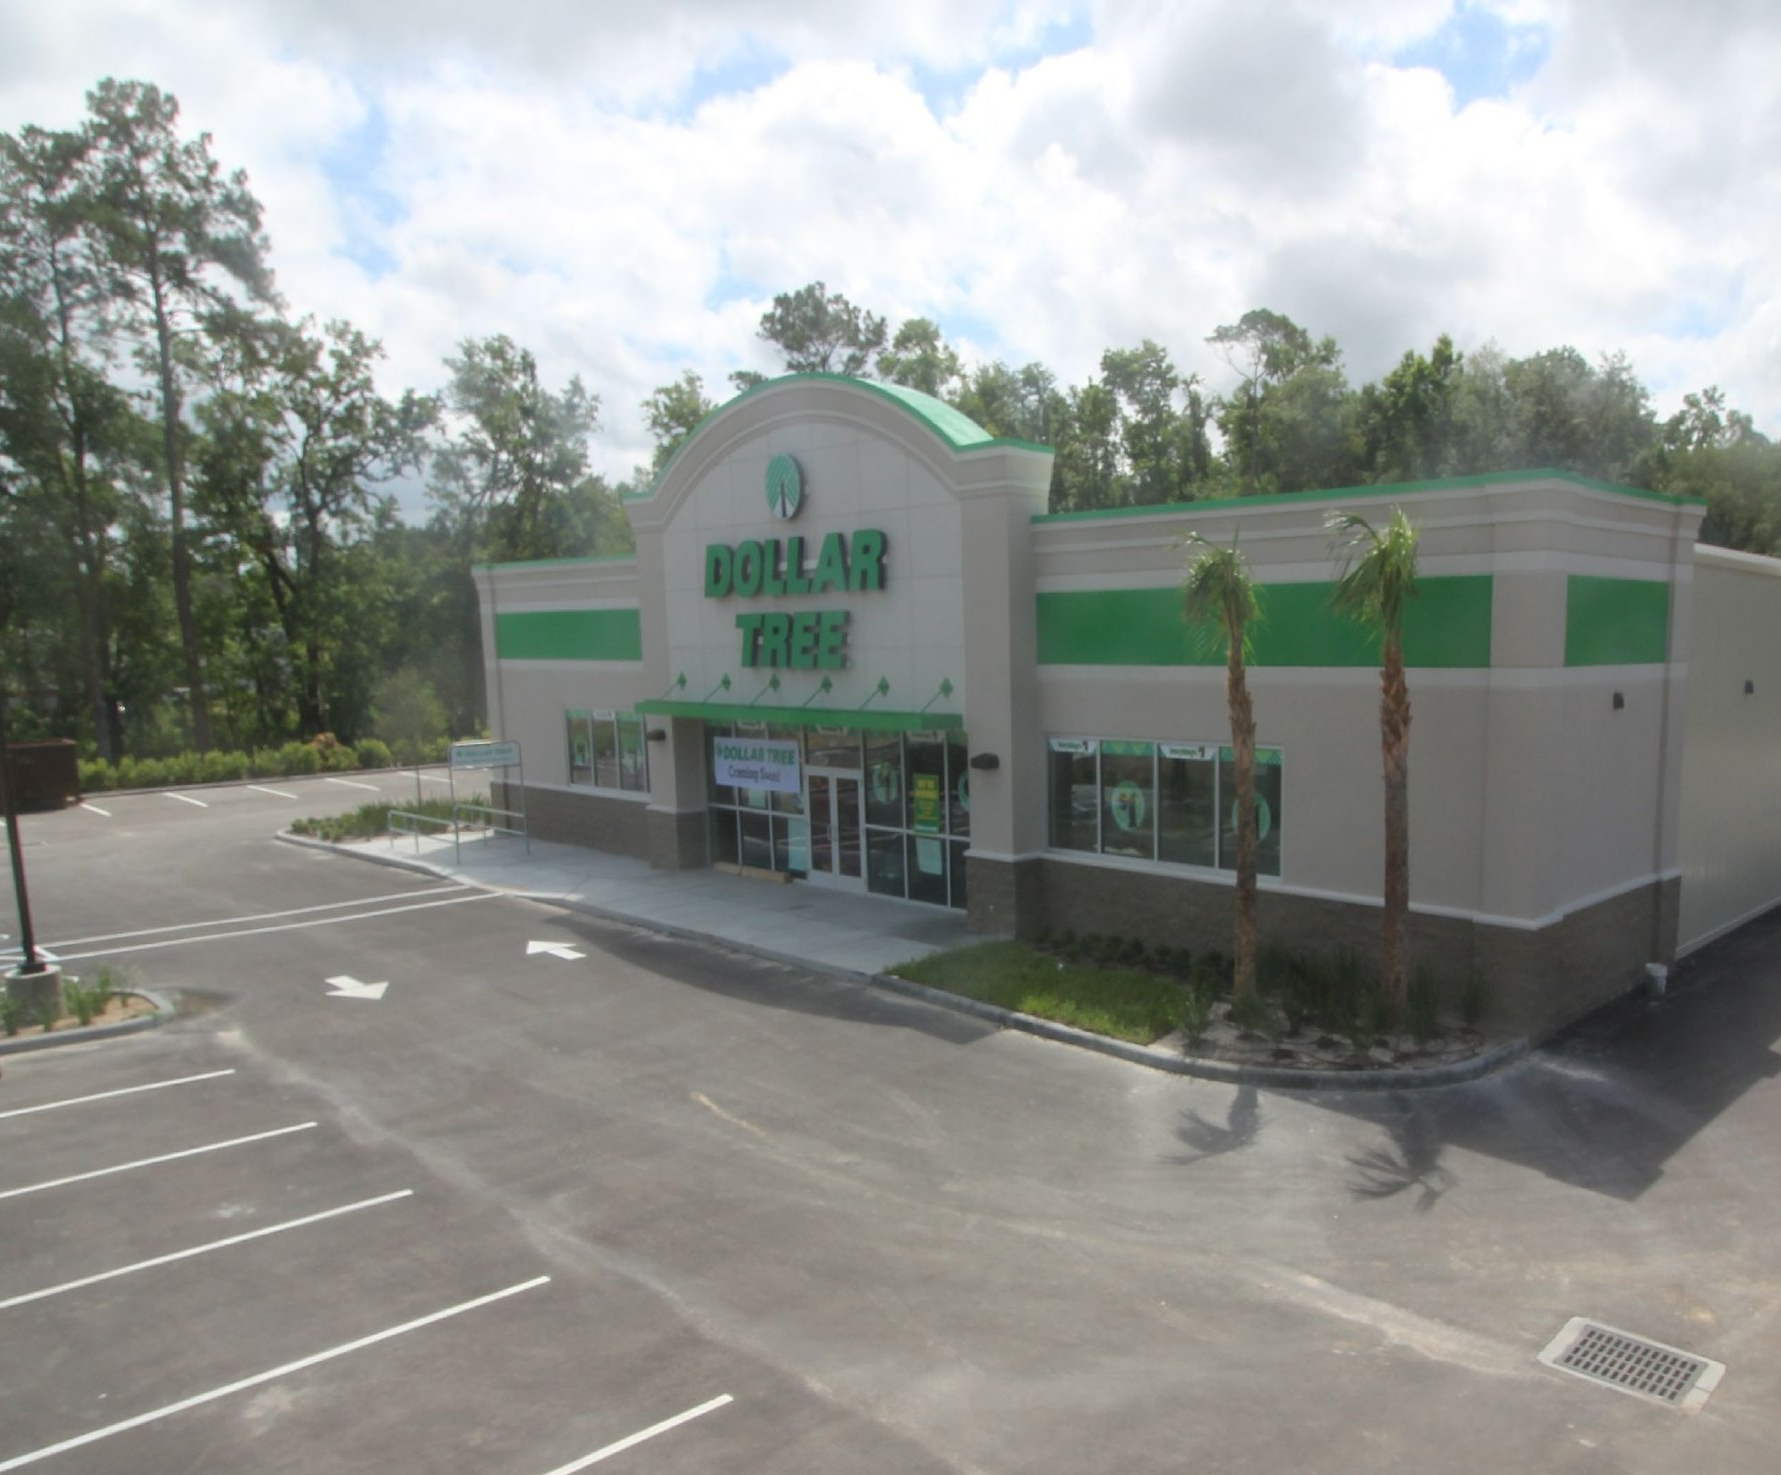 Dollar_Tree-_Middleburg,_FL-20180529-105907.jpg